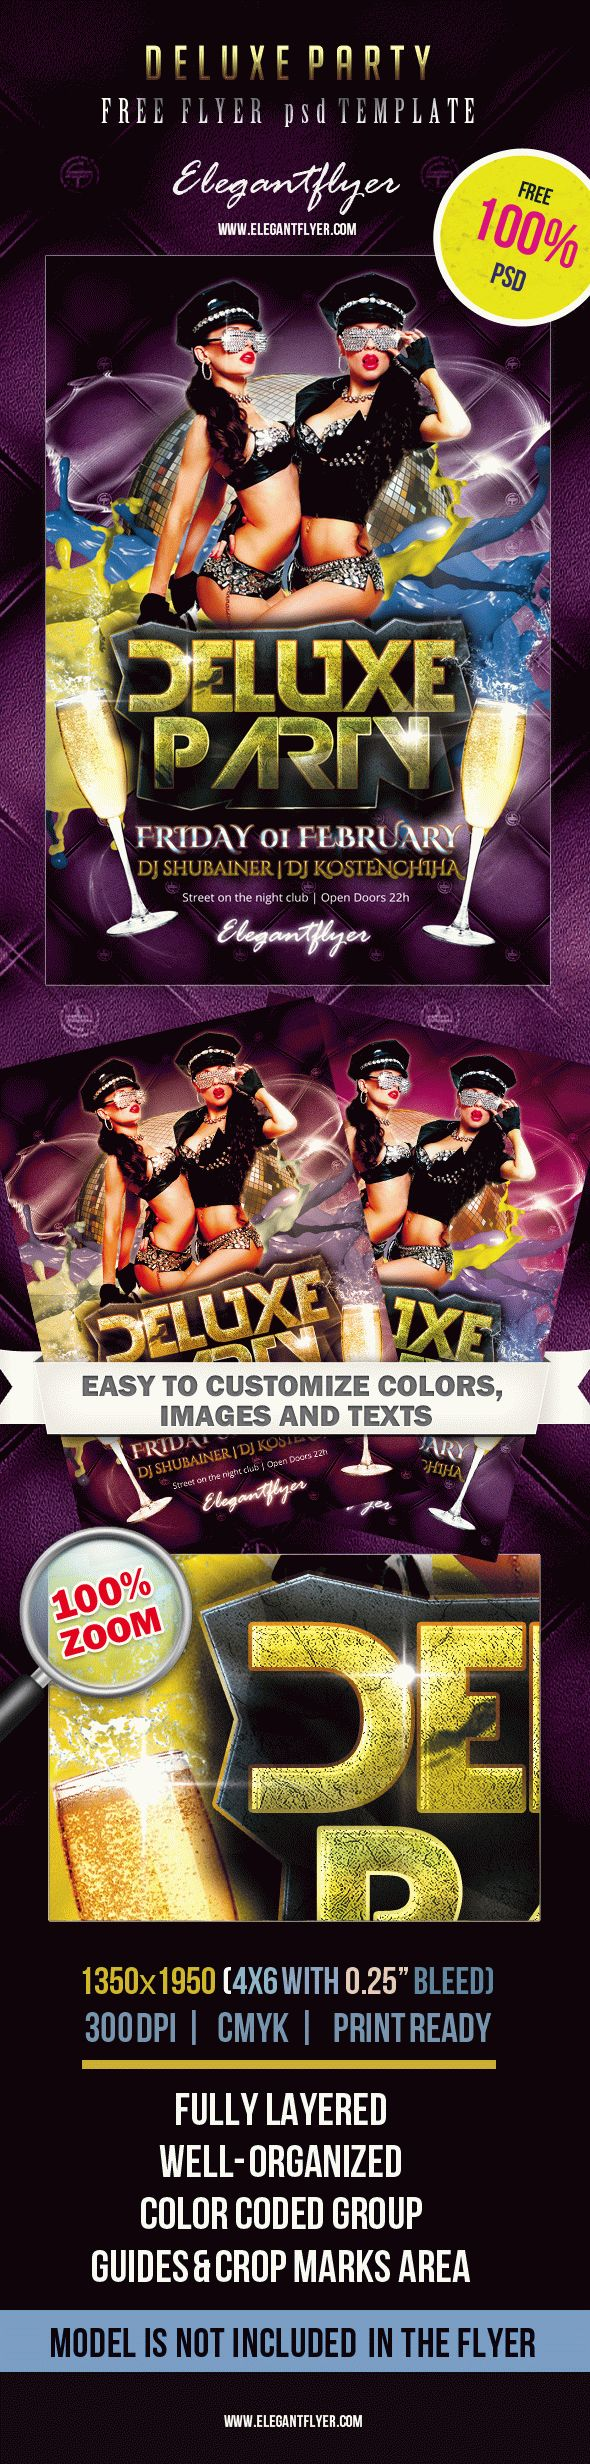 Deluxe Party – Free Club Flyer PSD Template